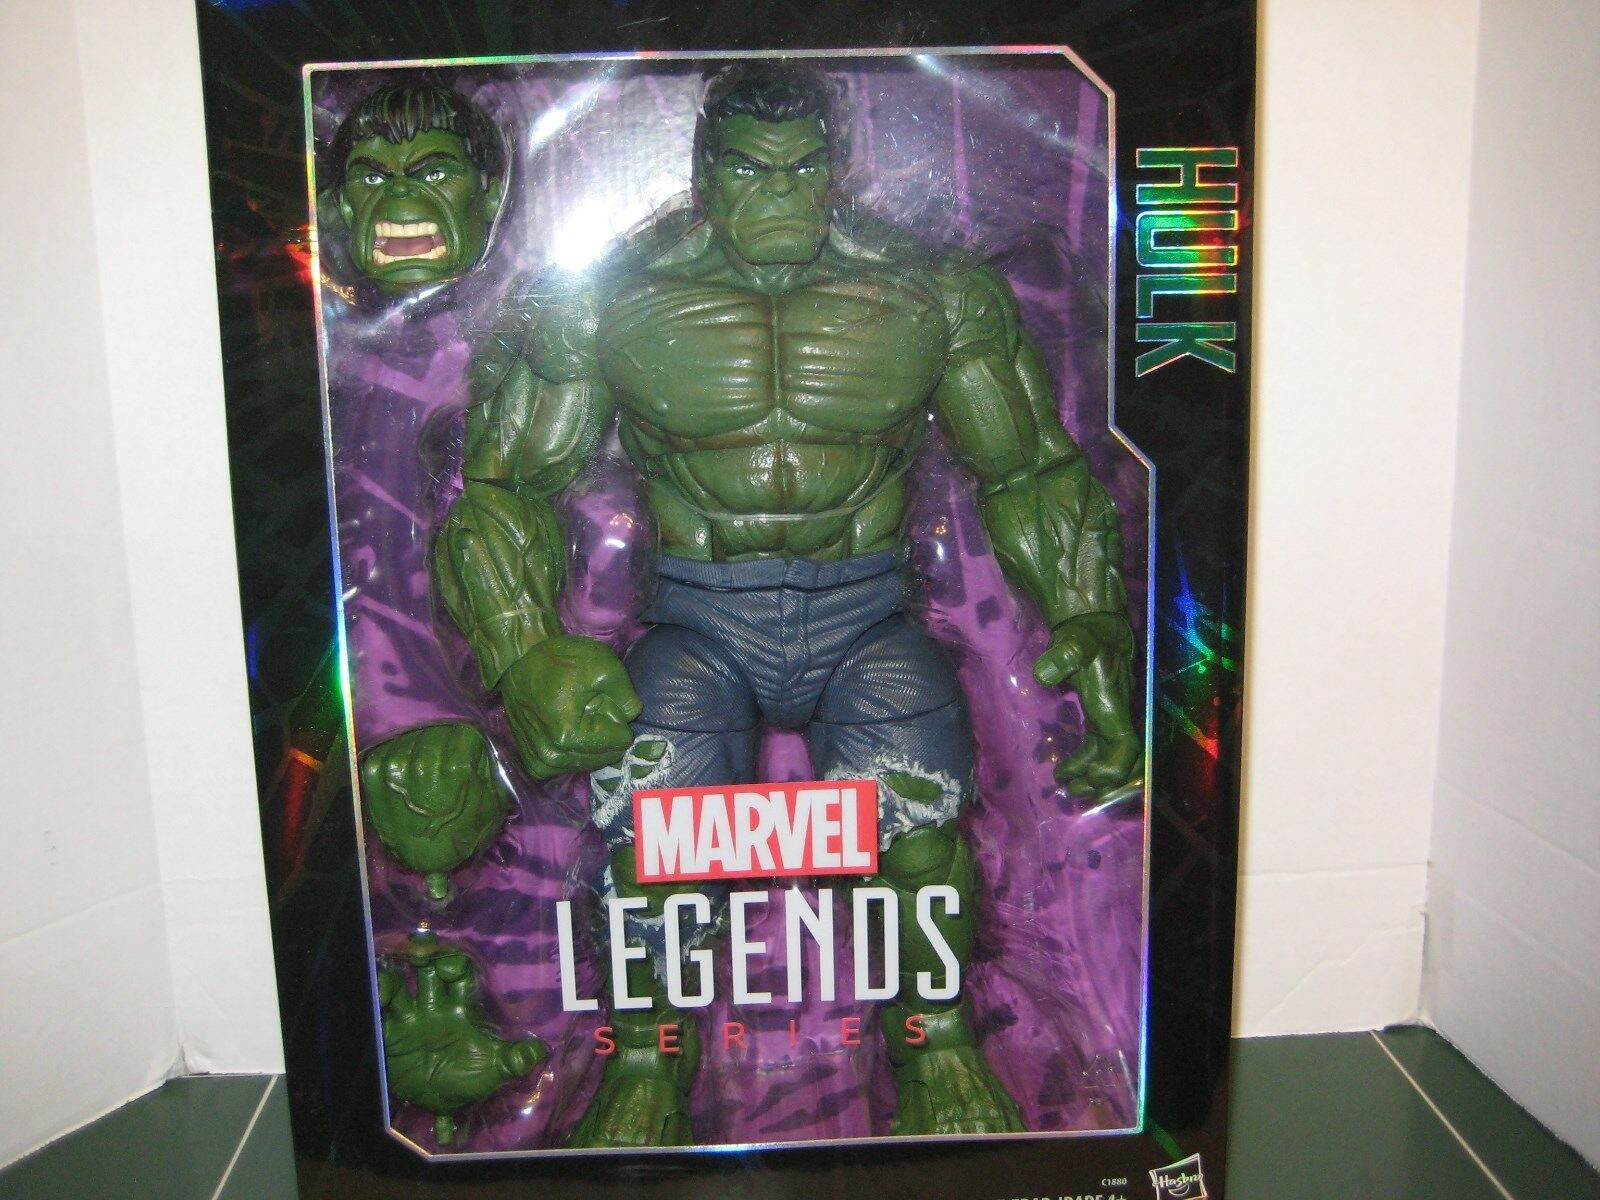 Marvel Legends Series 17 inch Hulk Figure Sealed NEW